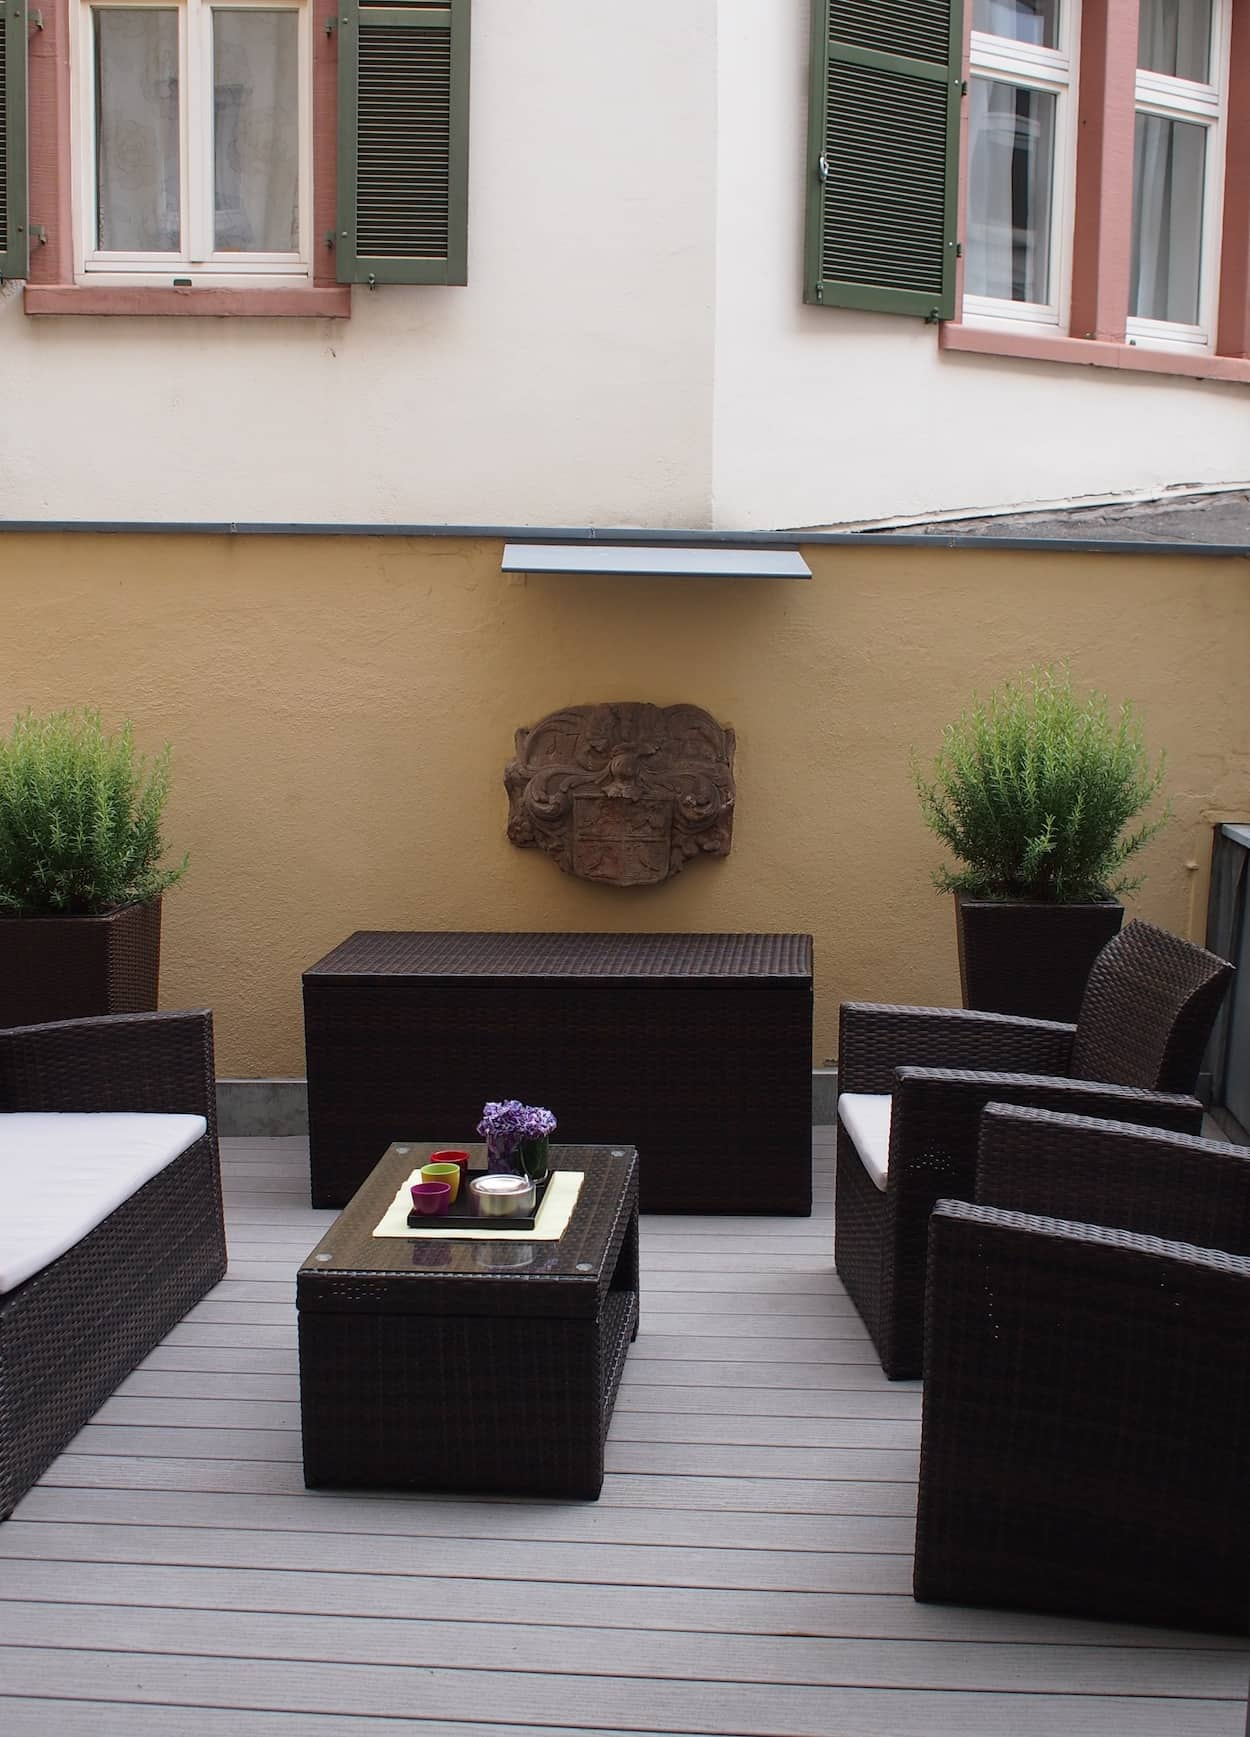 The upstairs terrace of the Sinn boutique